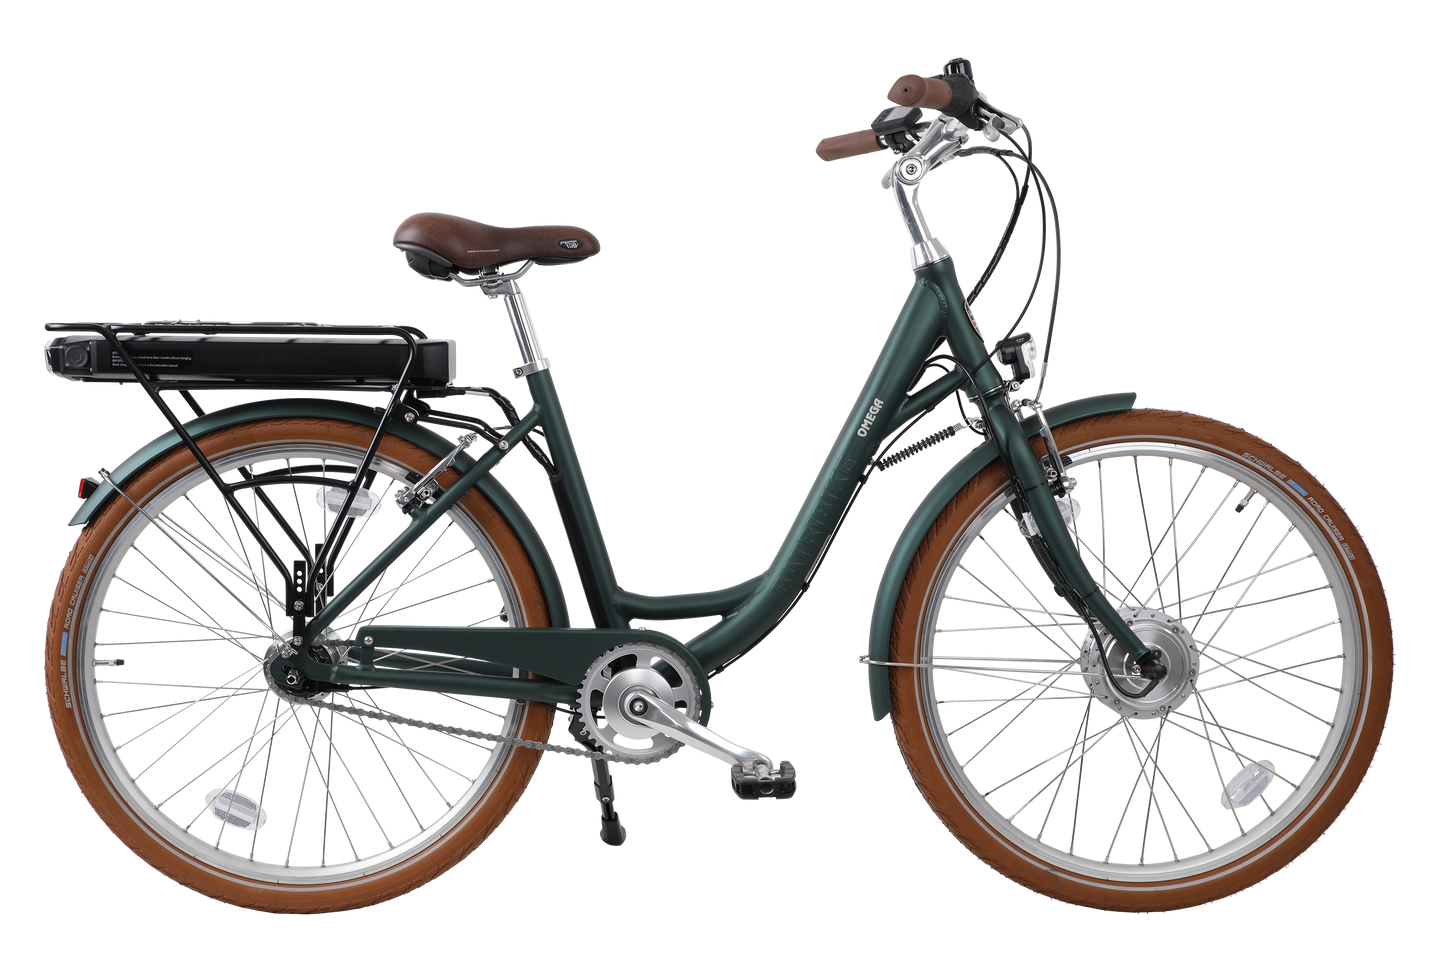 Omega step through, low seat electric bike with 26